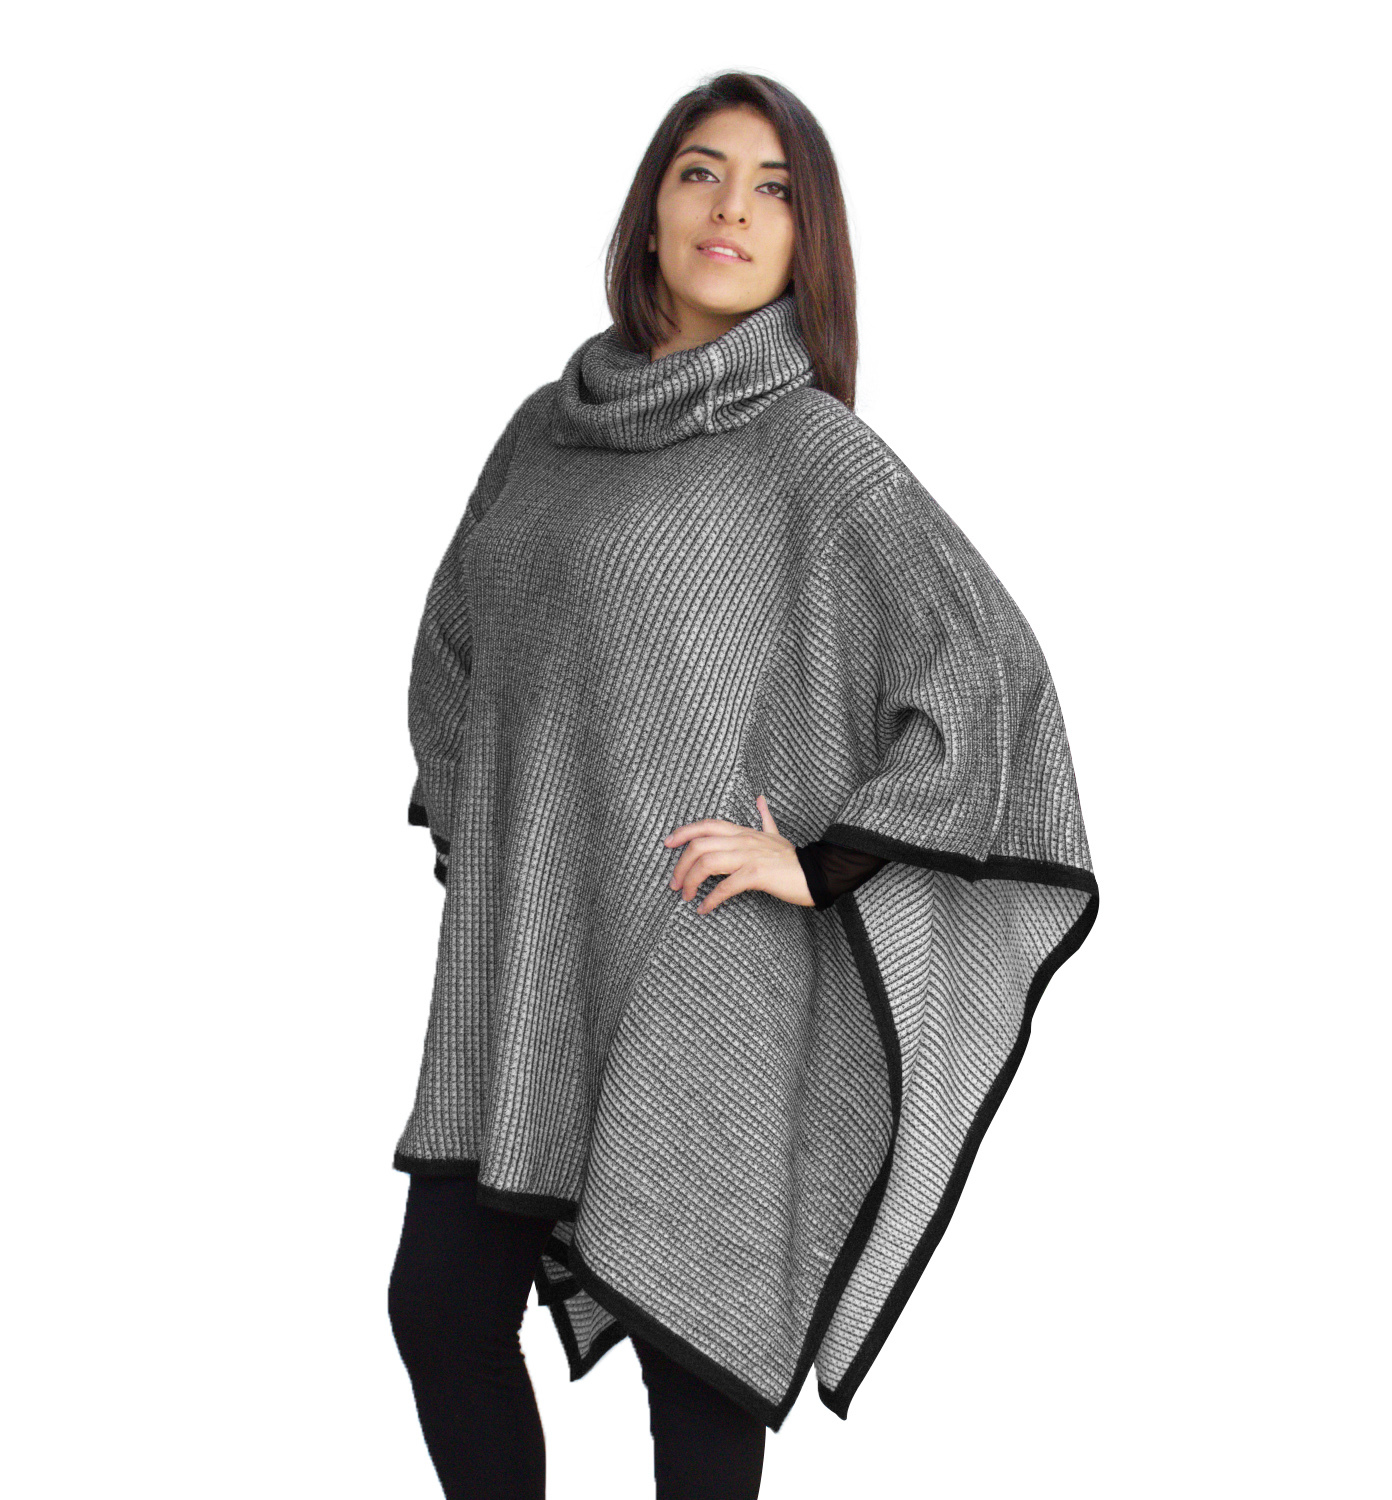 Knitting Pattern For Turtleneck Poncho : Womens Superfine Alpaca Wool Knitted Turtleneck Poncho